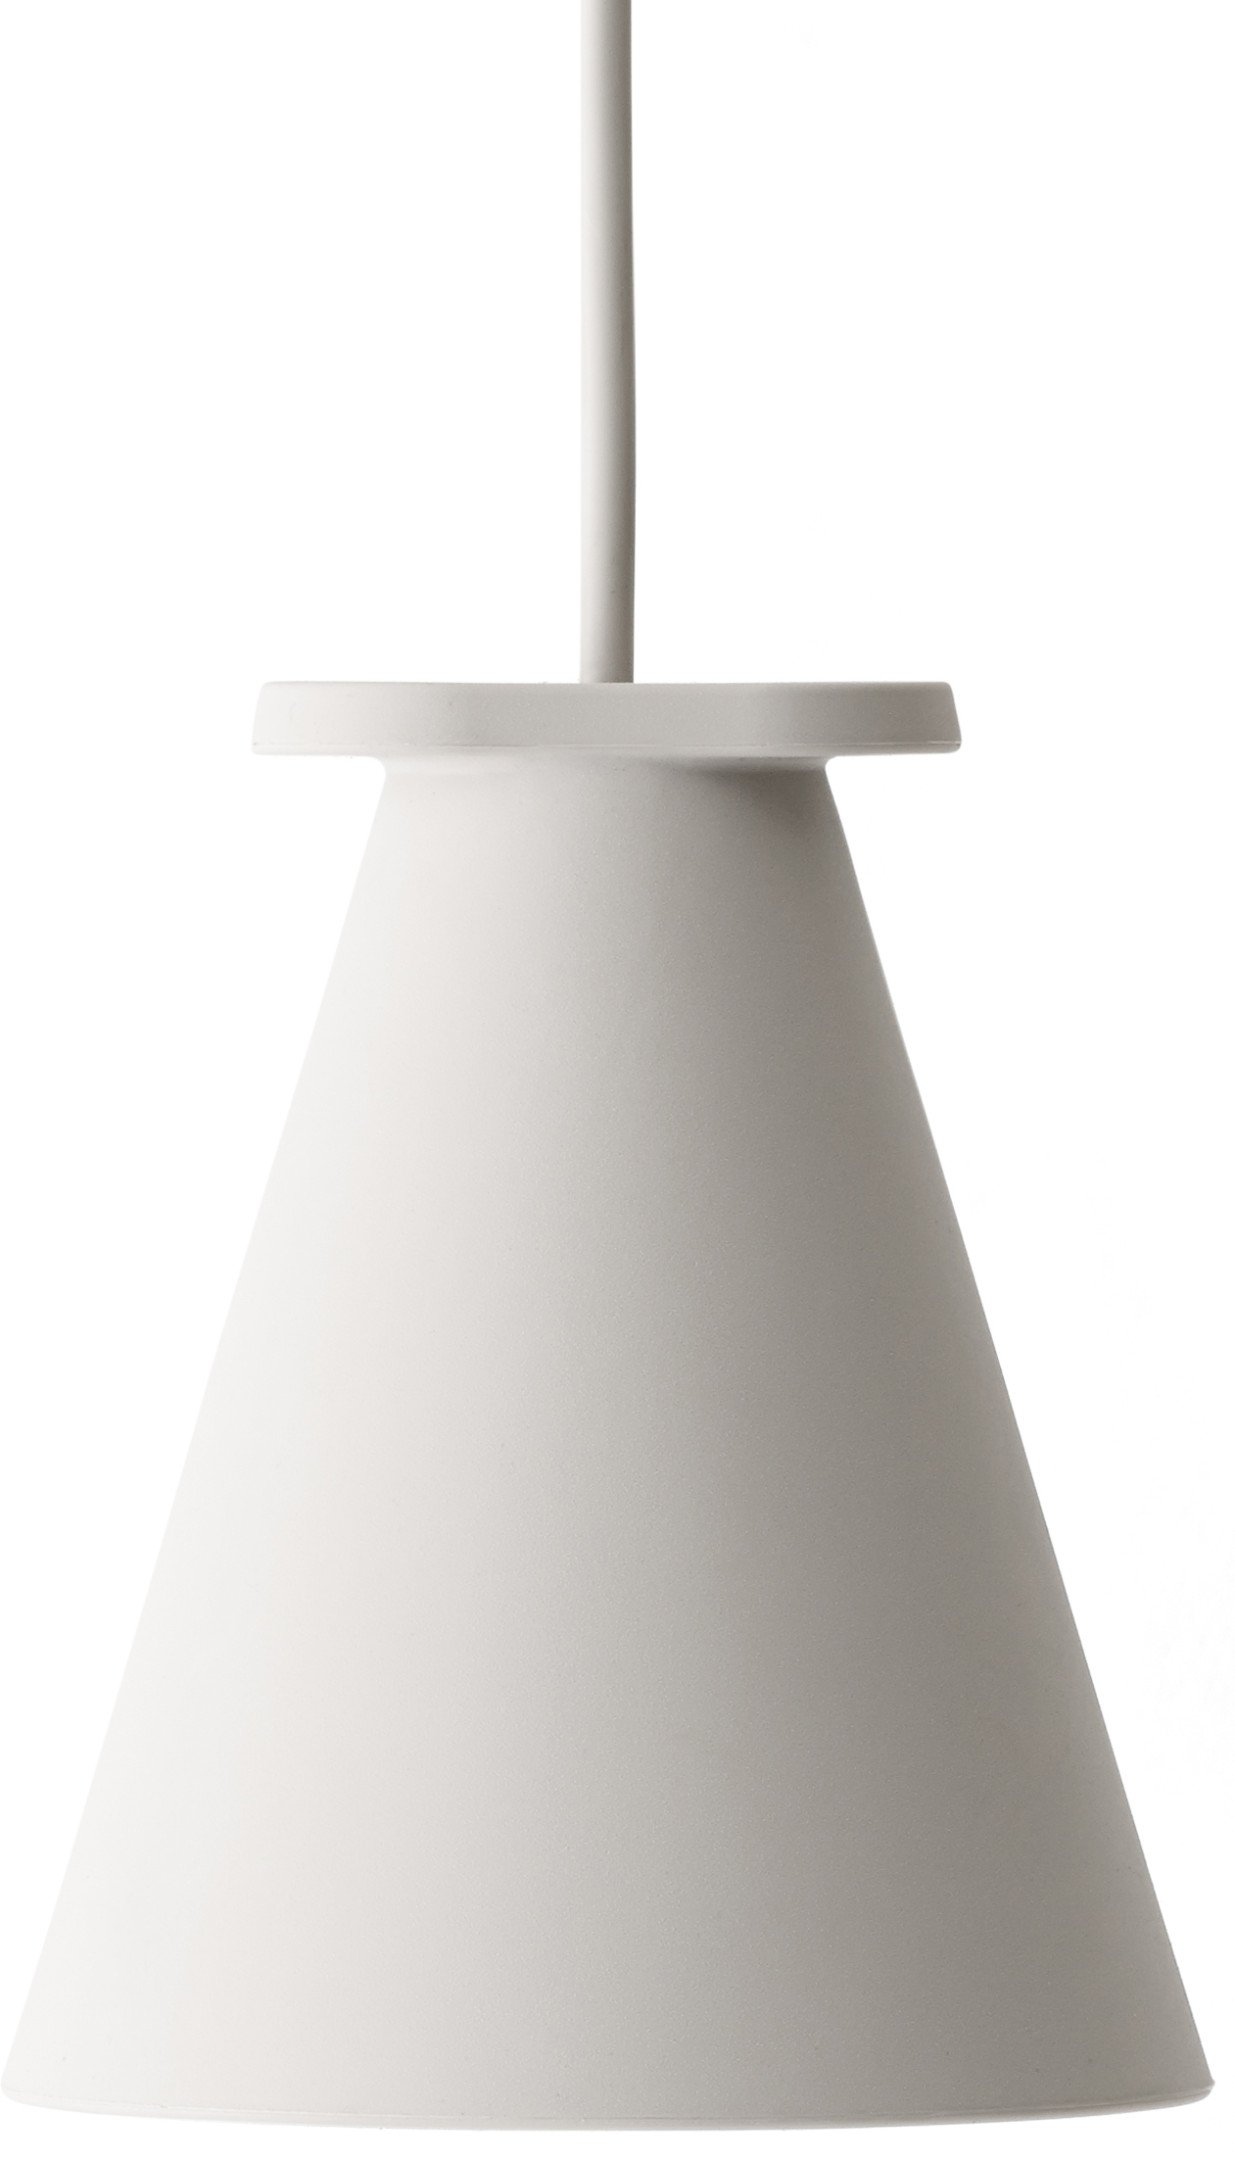 Bollard Lamp Ash, by S. Schneck for Menu